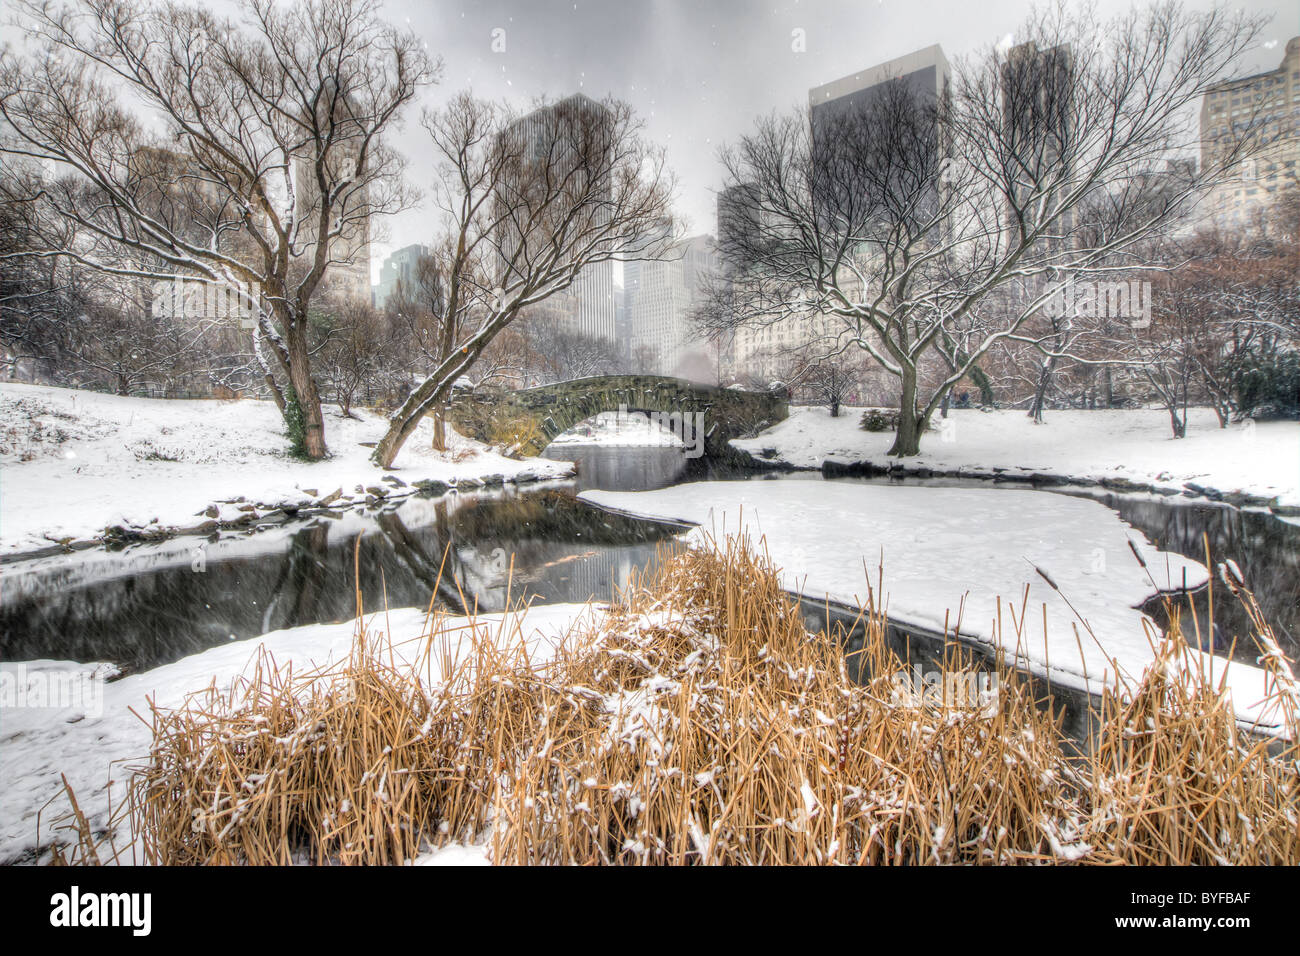 Gapstow Bridge in Central Park During a Snowstorm - Stock Image